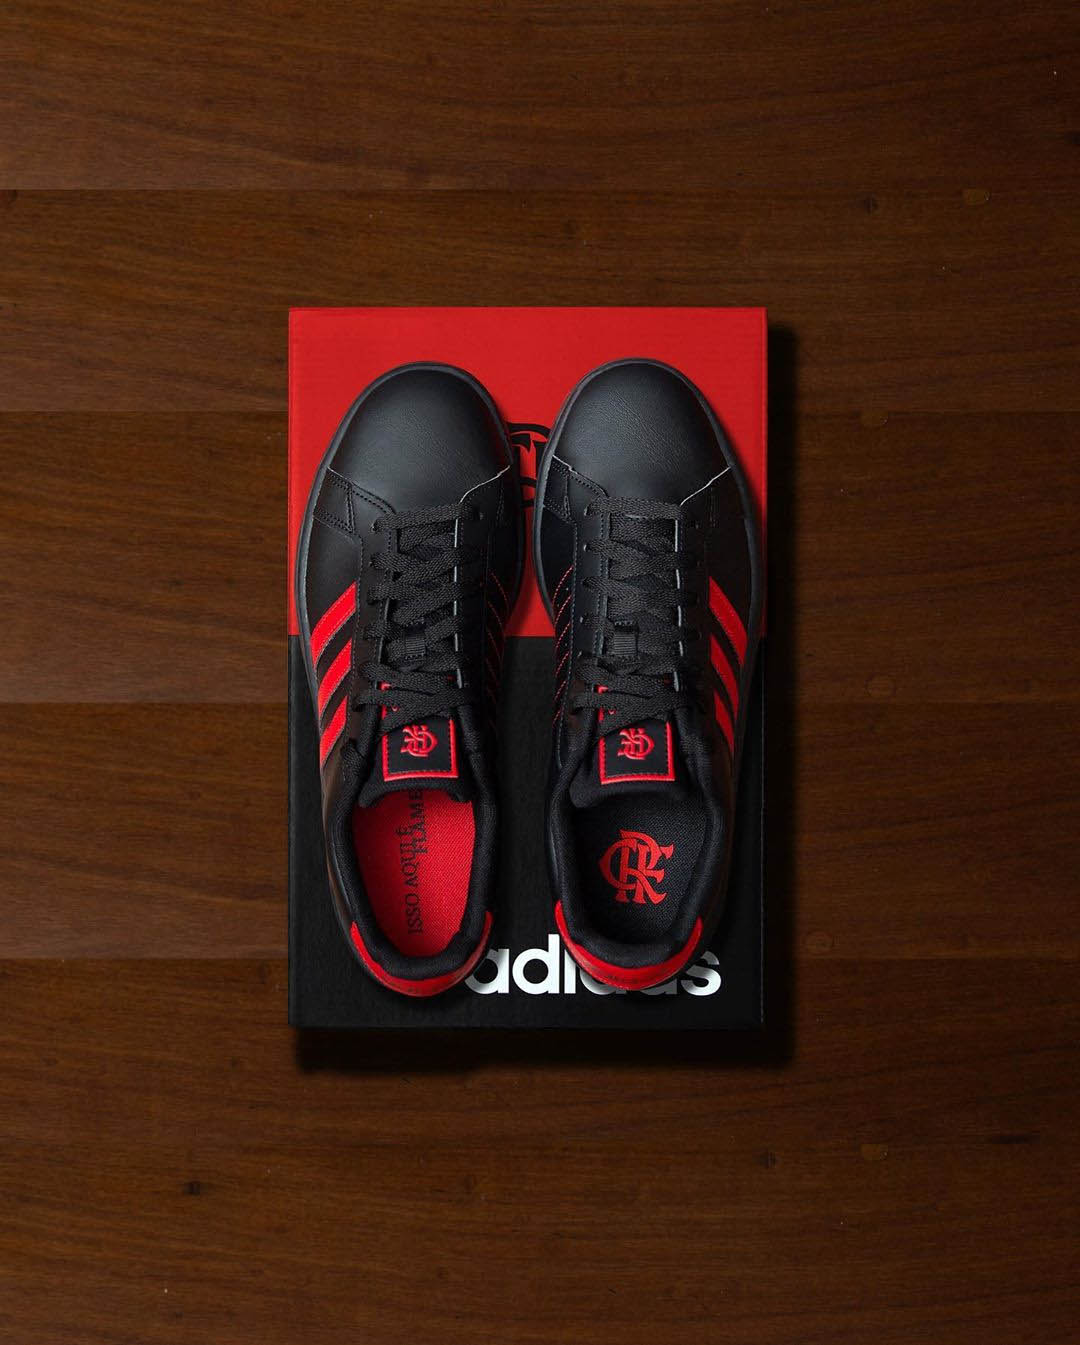 Adidas Grand Court Flamengo